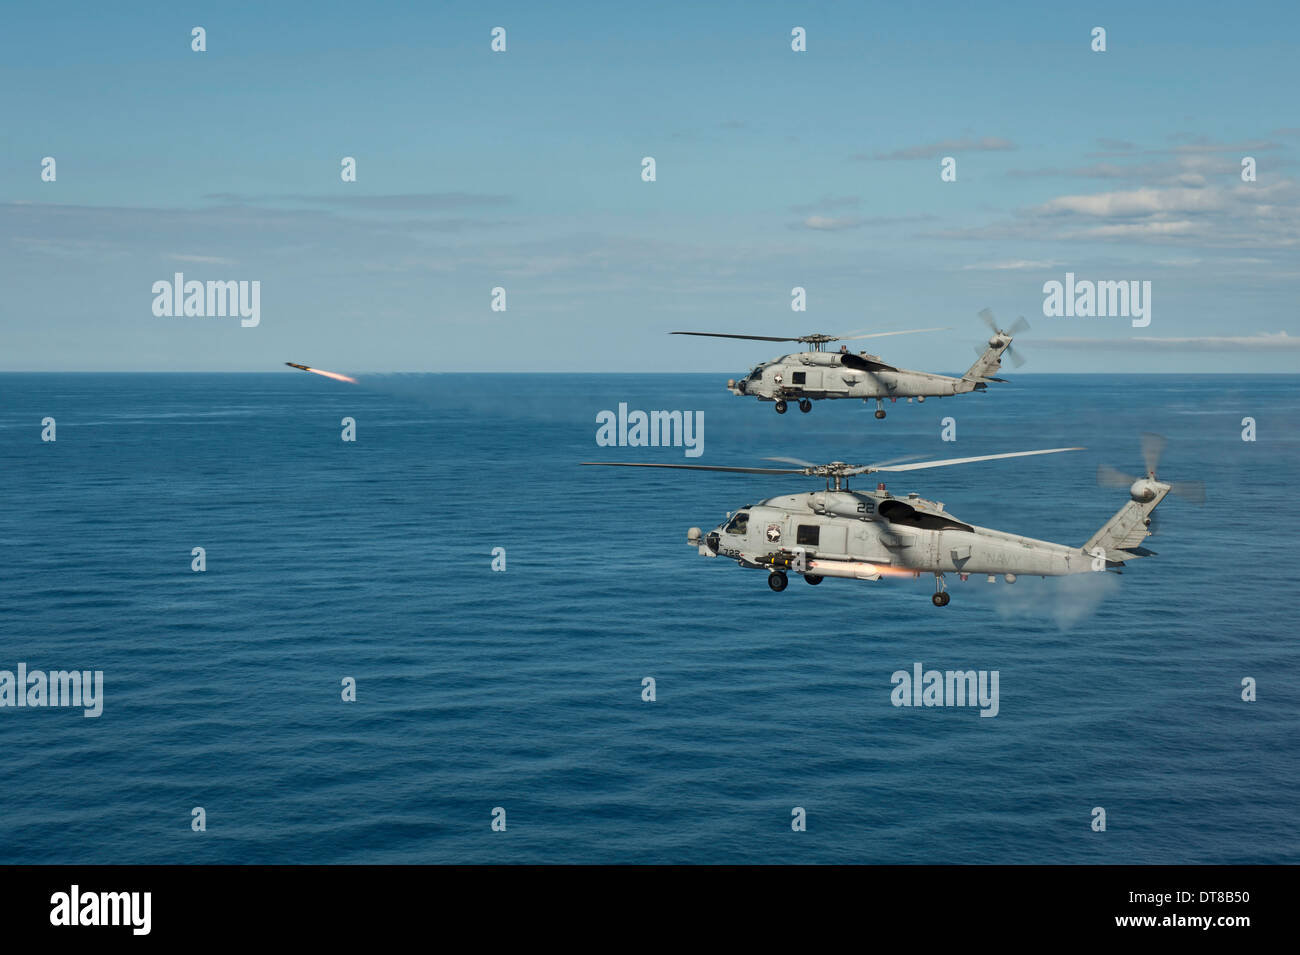 South China Sea, May 18, 2013 - Two MH-60R Sea Hawk helicopters launch AGM-114 hellfire missiles during a live fire exercise. - Stock Image